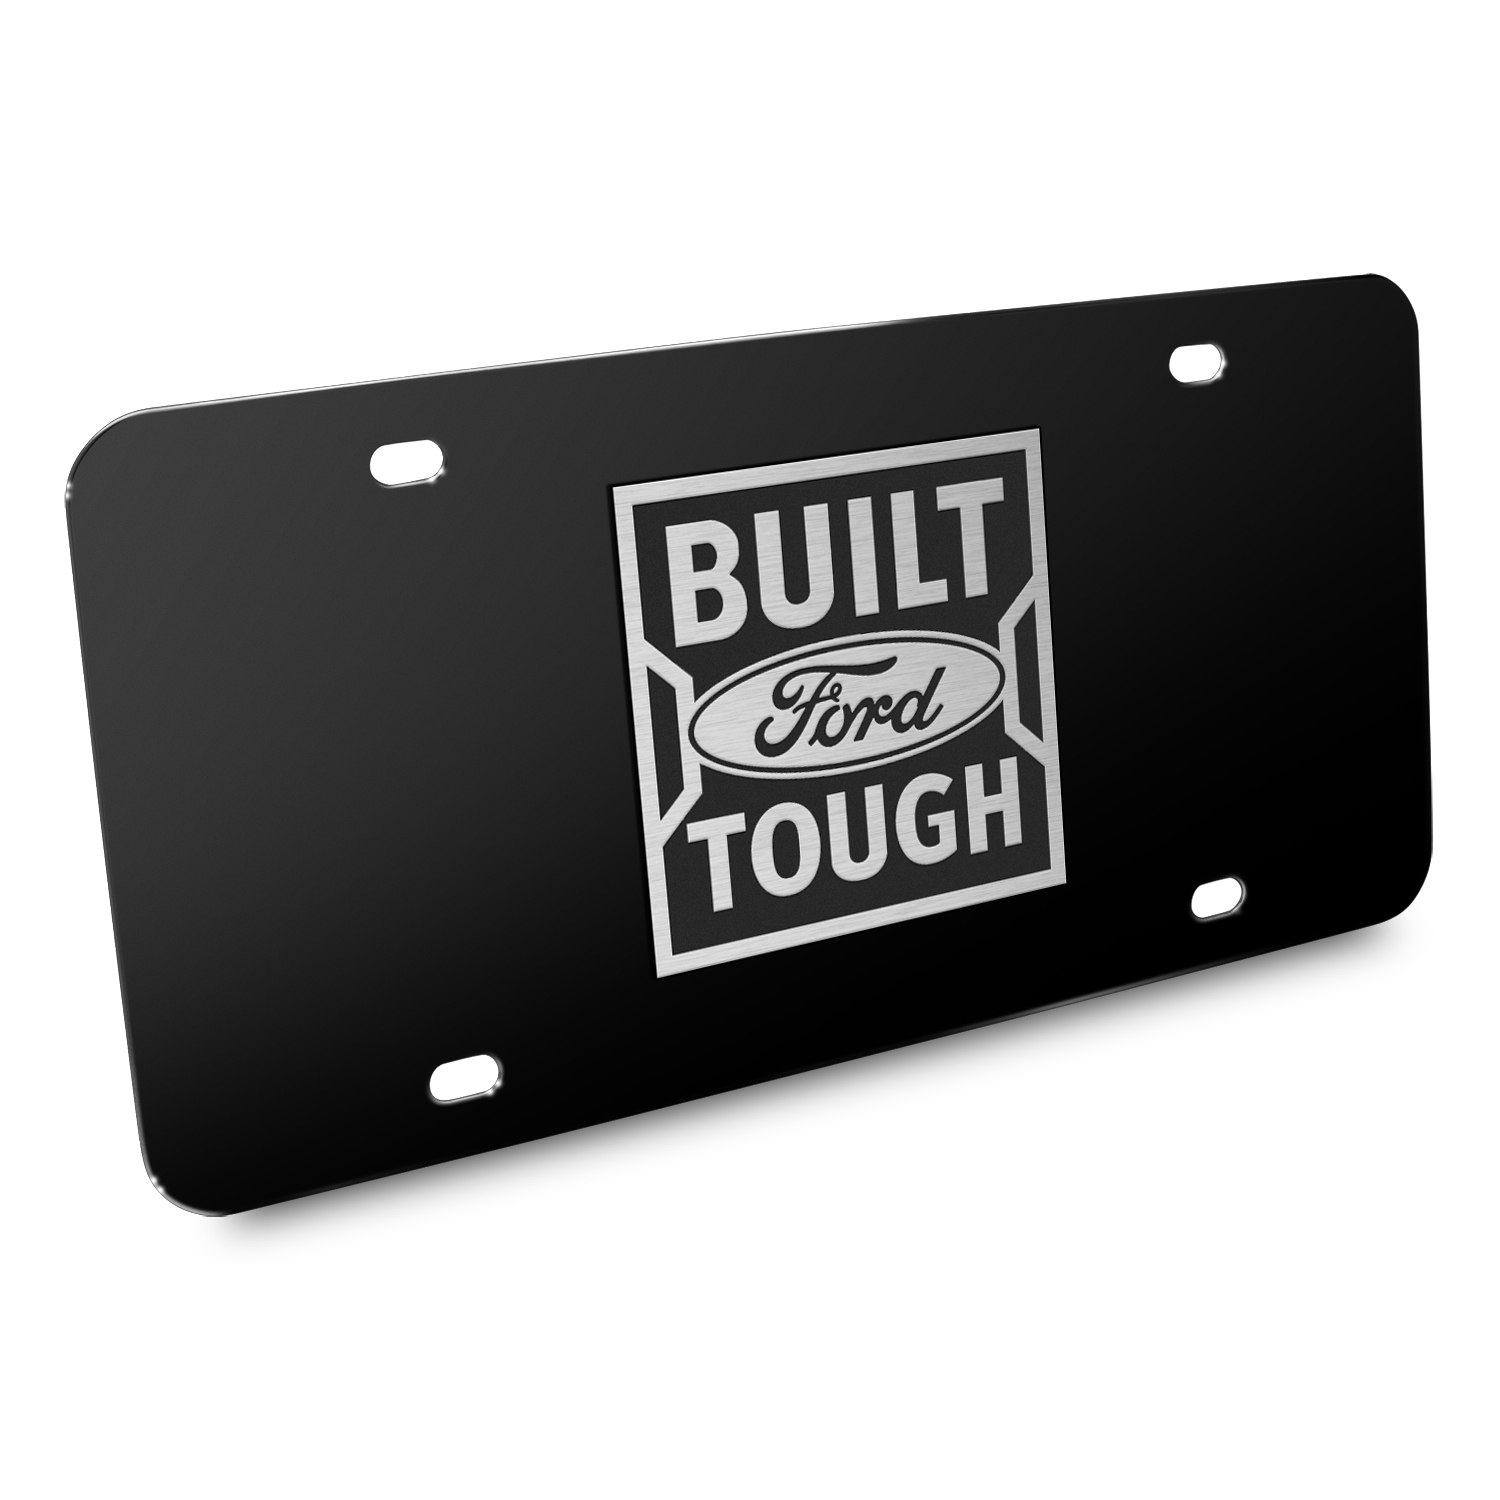 Ford Built Ford Tough 3D Black Stainless Steel License Plate